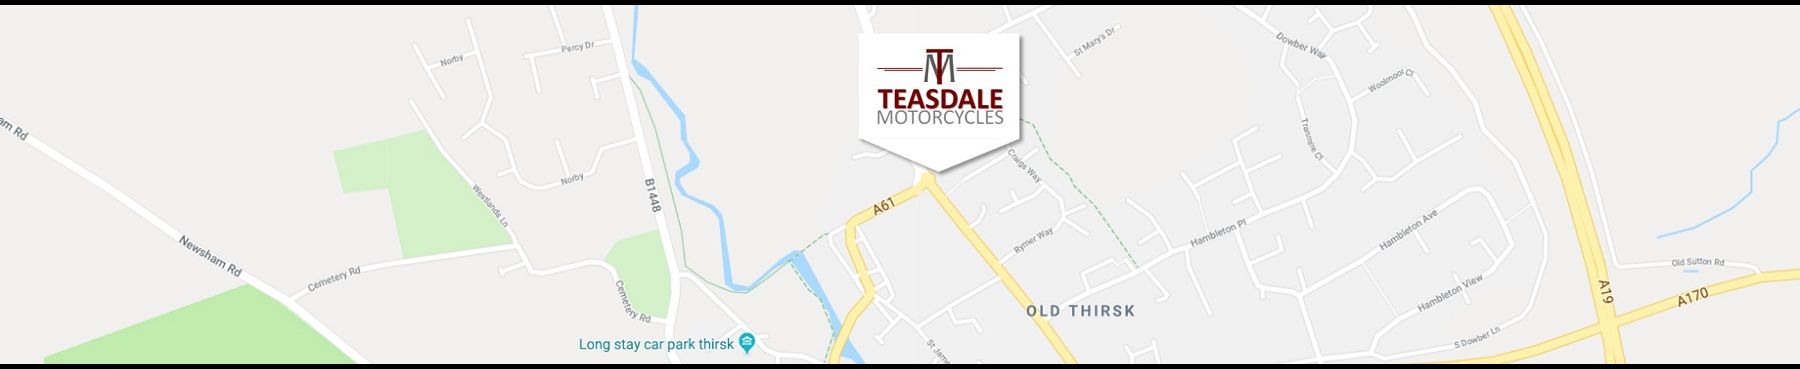 Google Maps Centred on Teasdale Motorcycles location